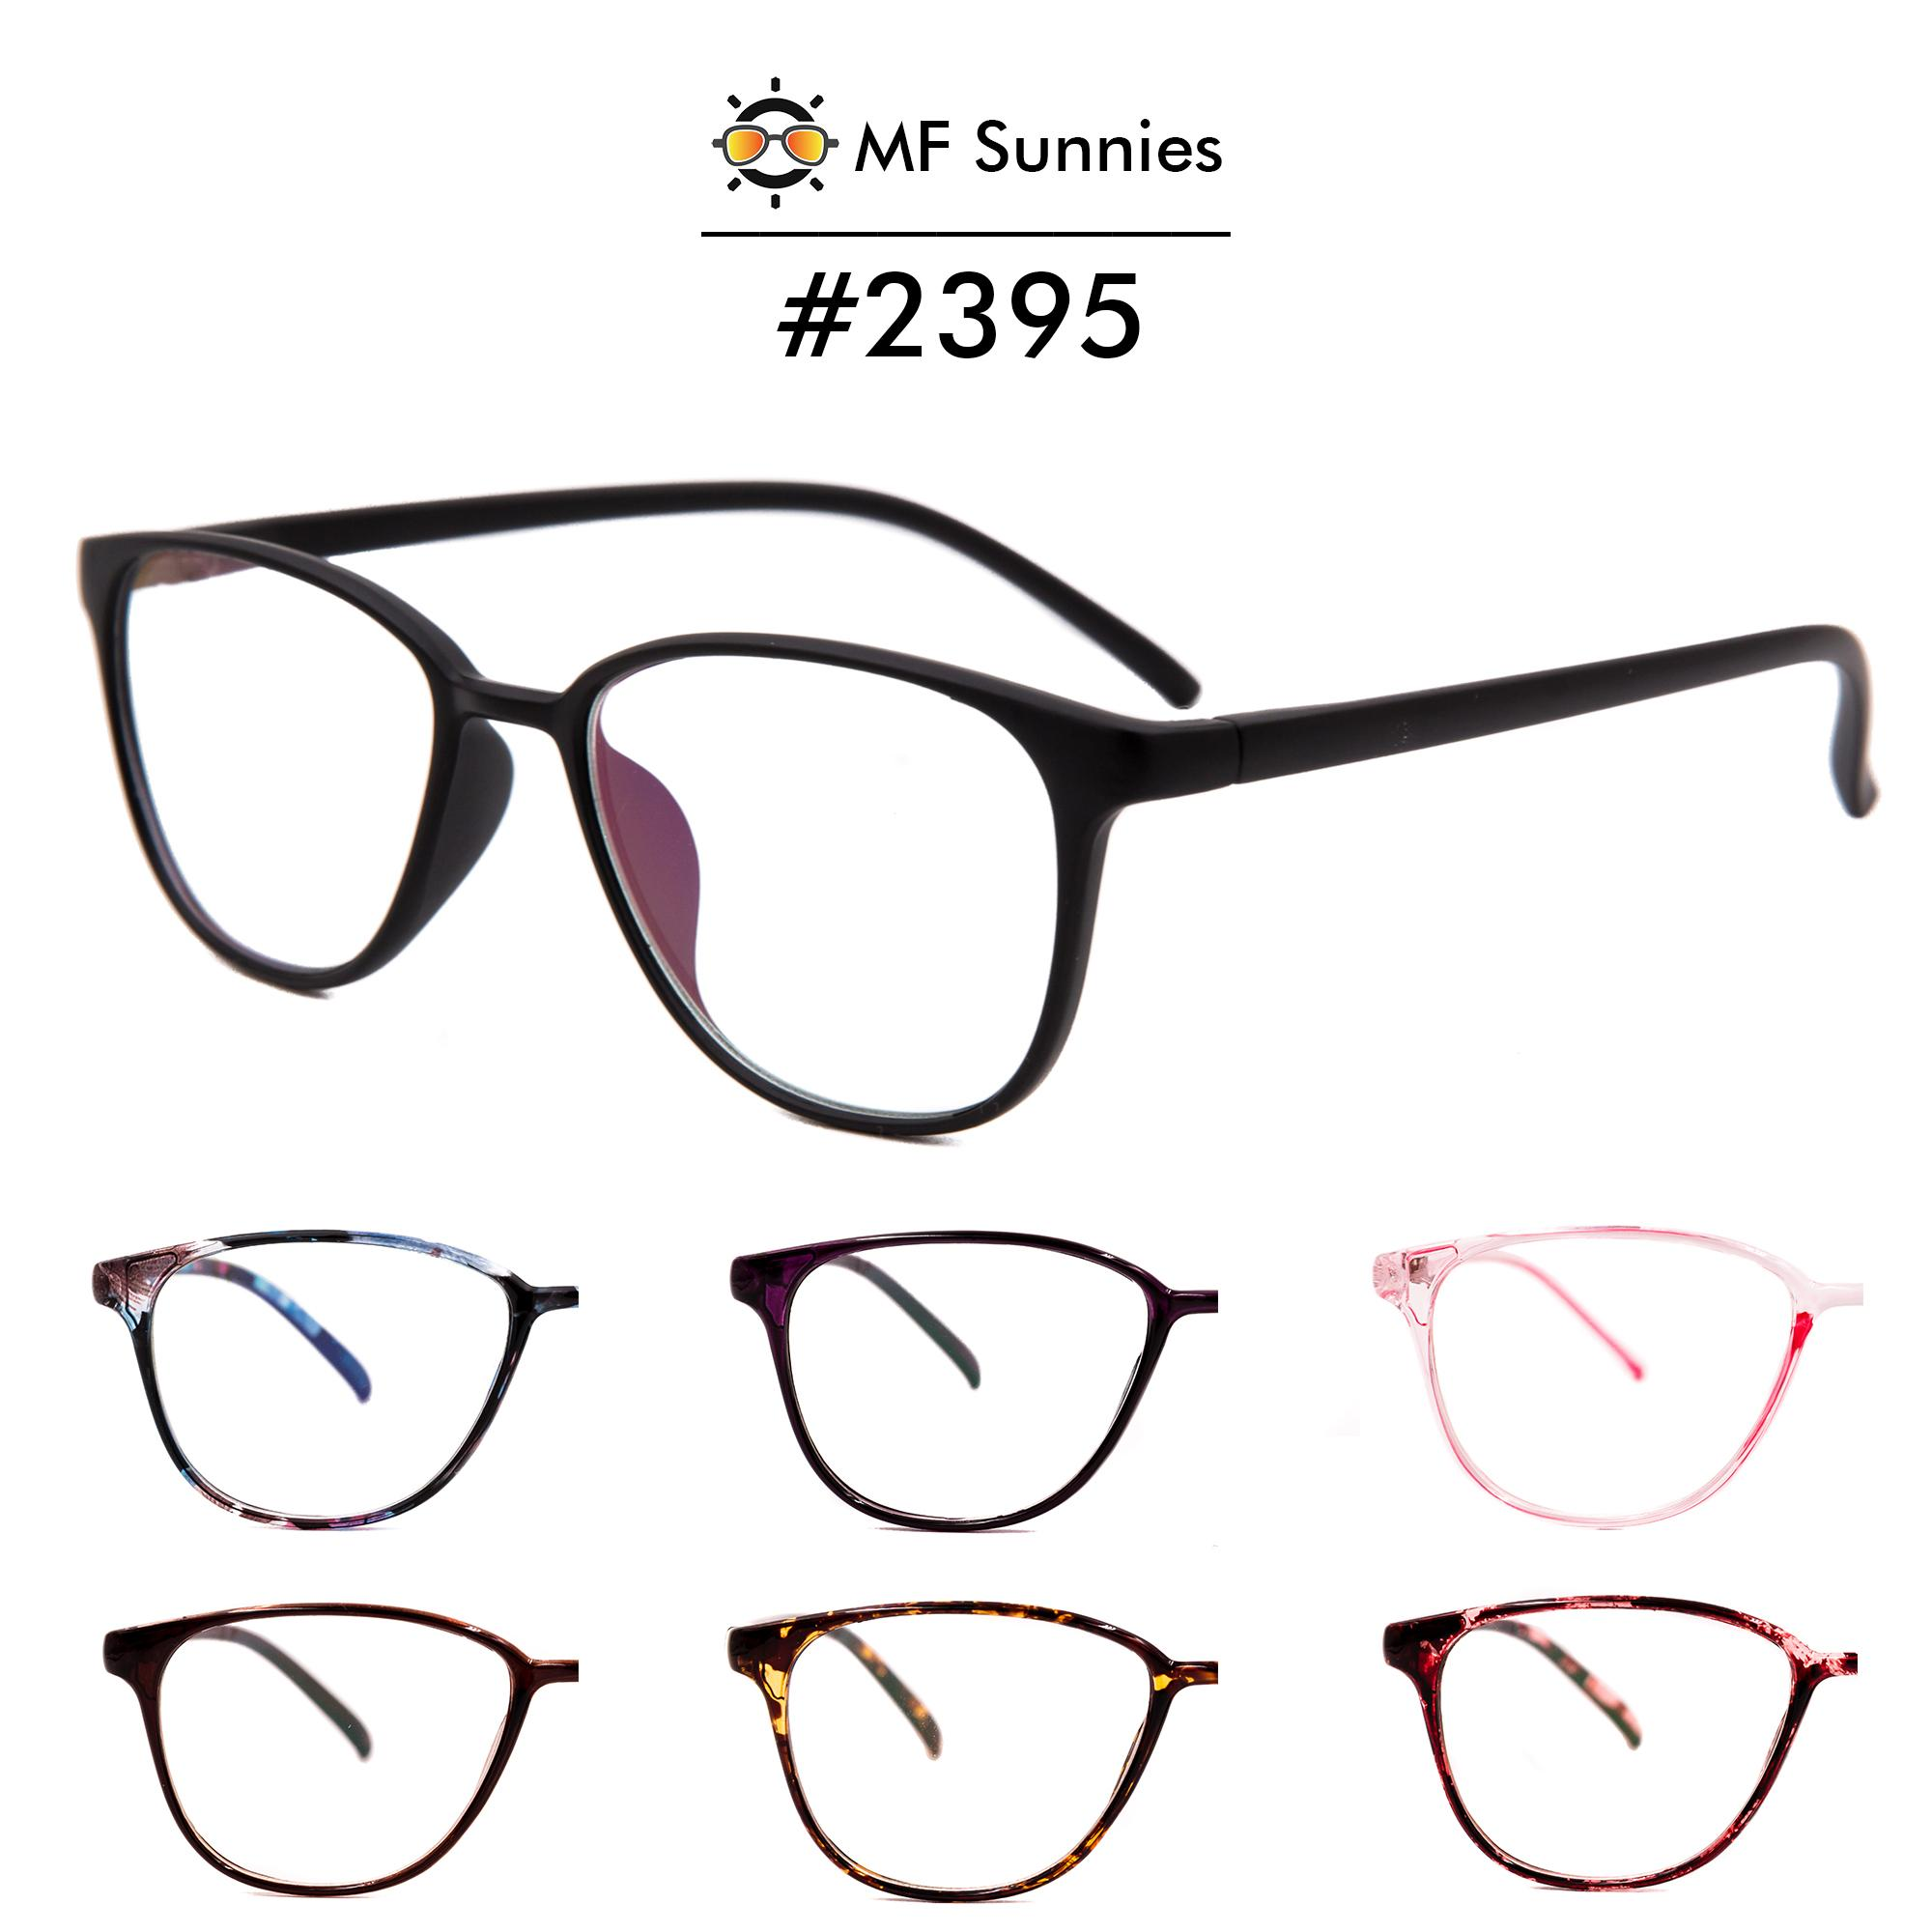 660c1fb57cf3 MFSunnies Computer Anti Blue light Radiation Eyewear High quality frame  Premium Acetate material Metal Hinges